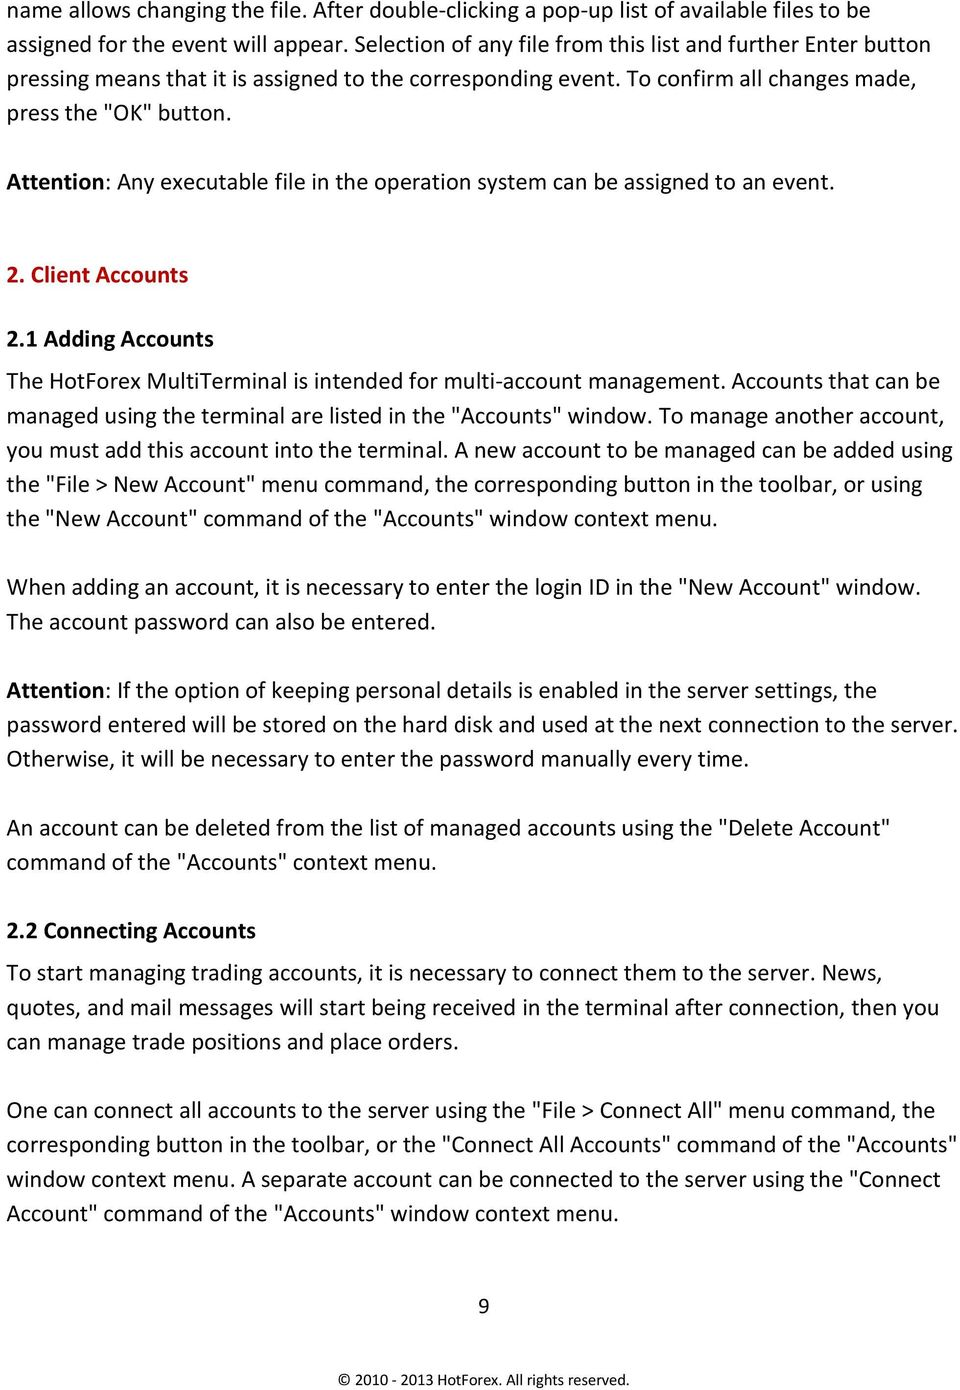 Attention: Any executable file in the operation system can be assigned to an event. 2. Client Accounts 2.1 Adding Accounts The HotForex MultiTerminal is intended for multi-account management.